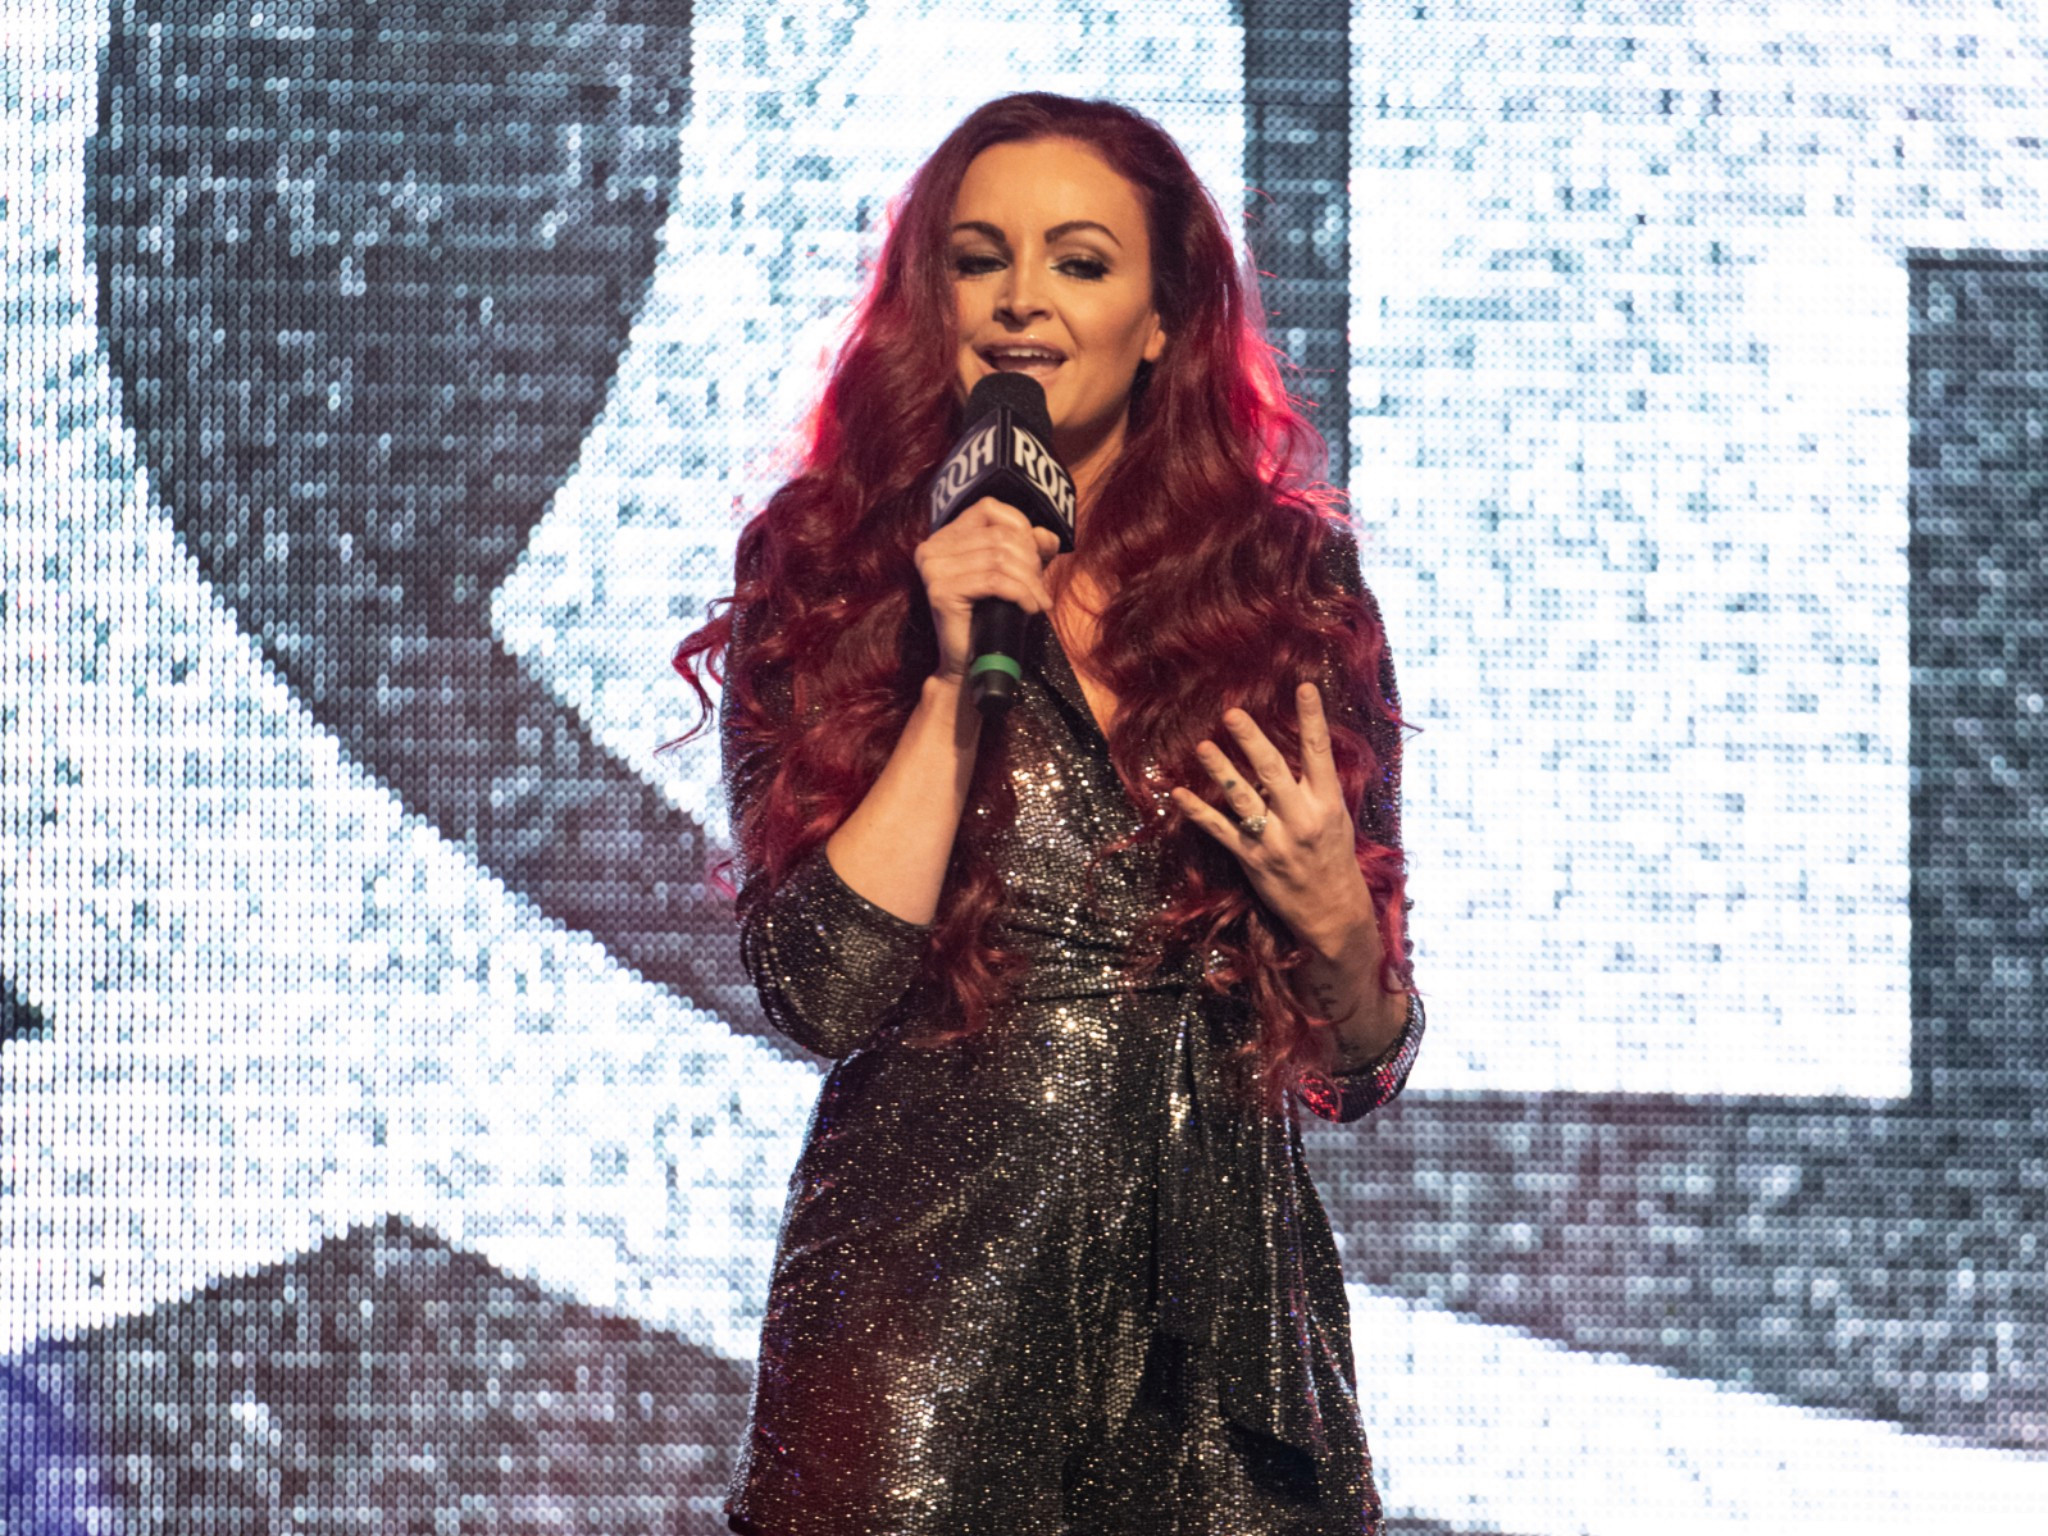 Ring of Honor's Maria Kanellis sees a lot of WWE legend Lita in AEW star Ruby Soho